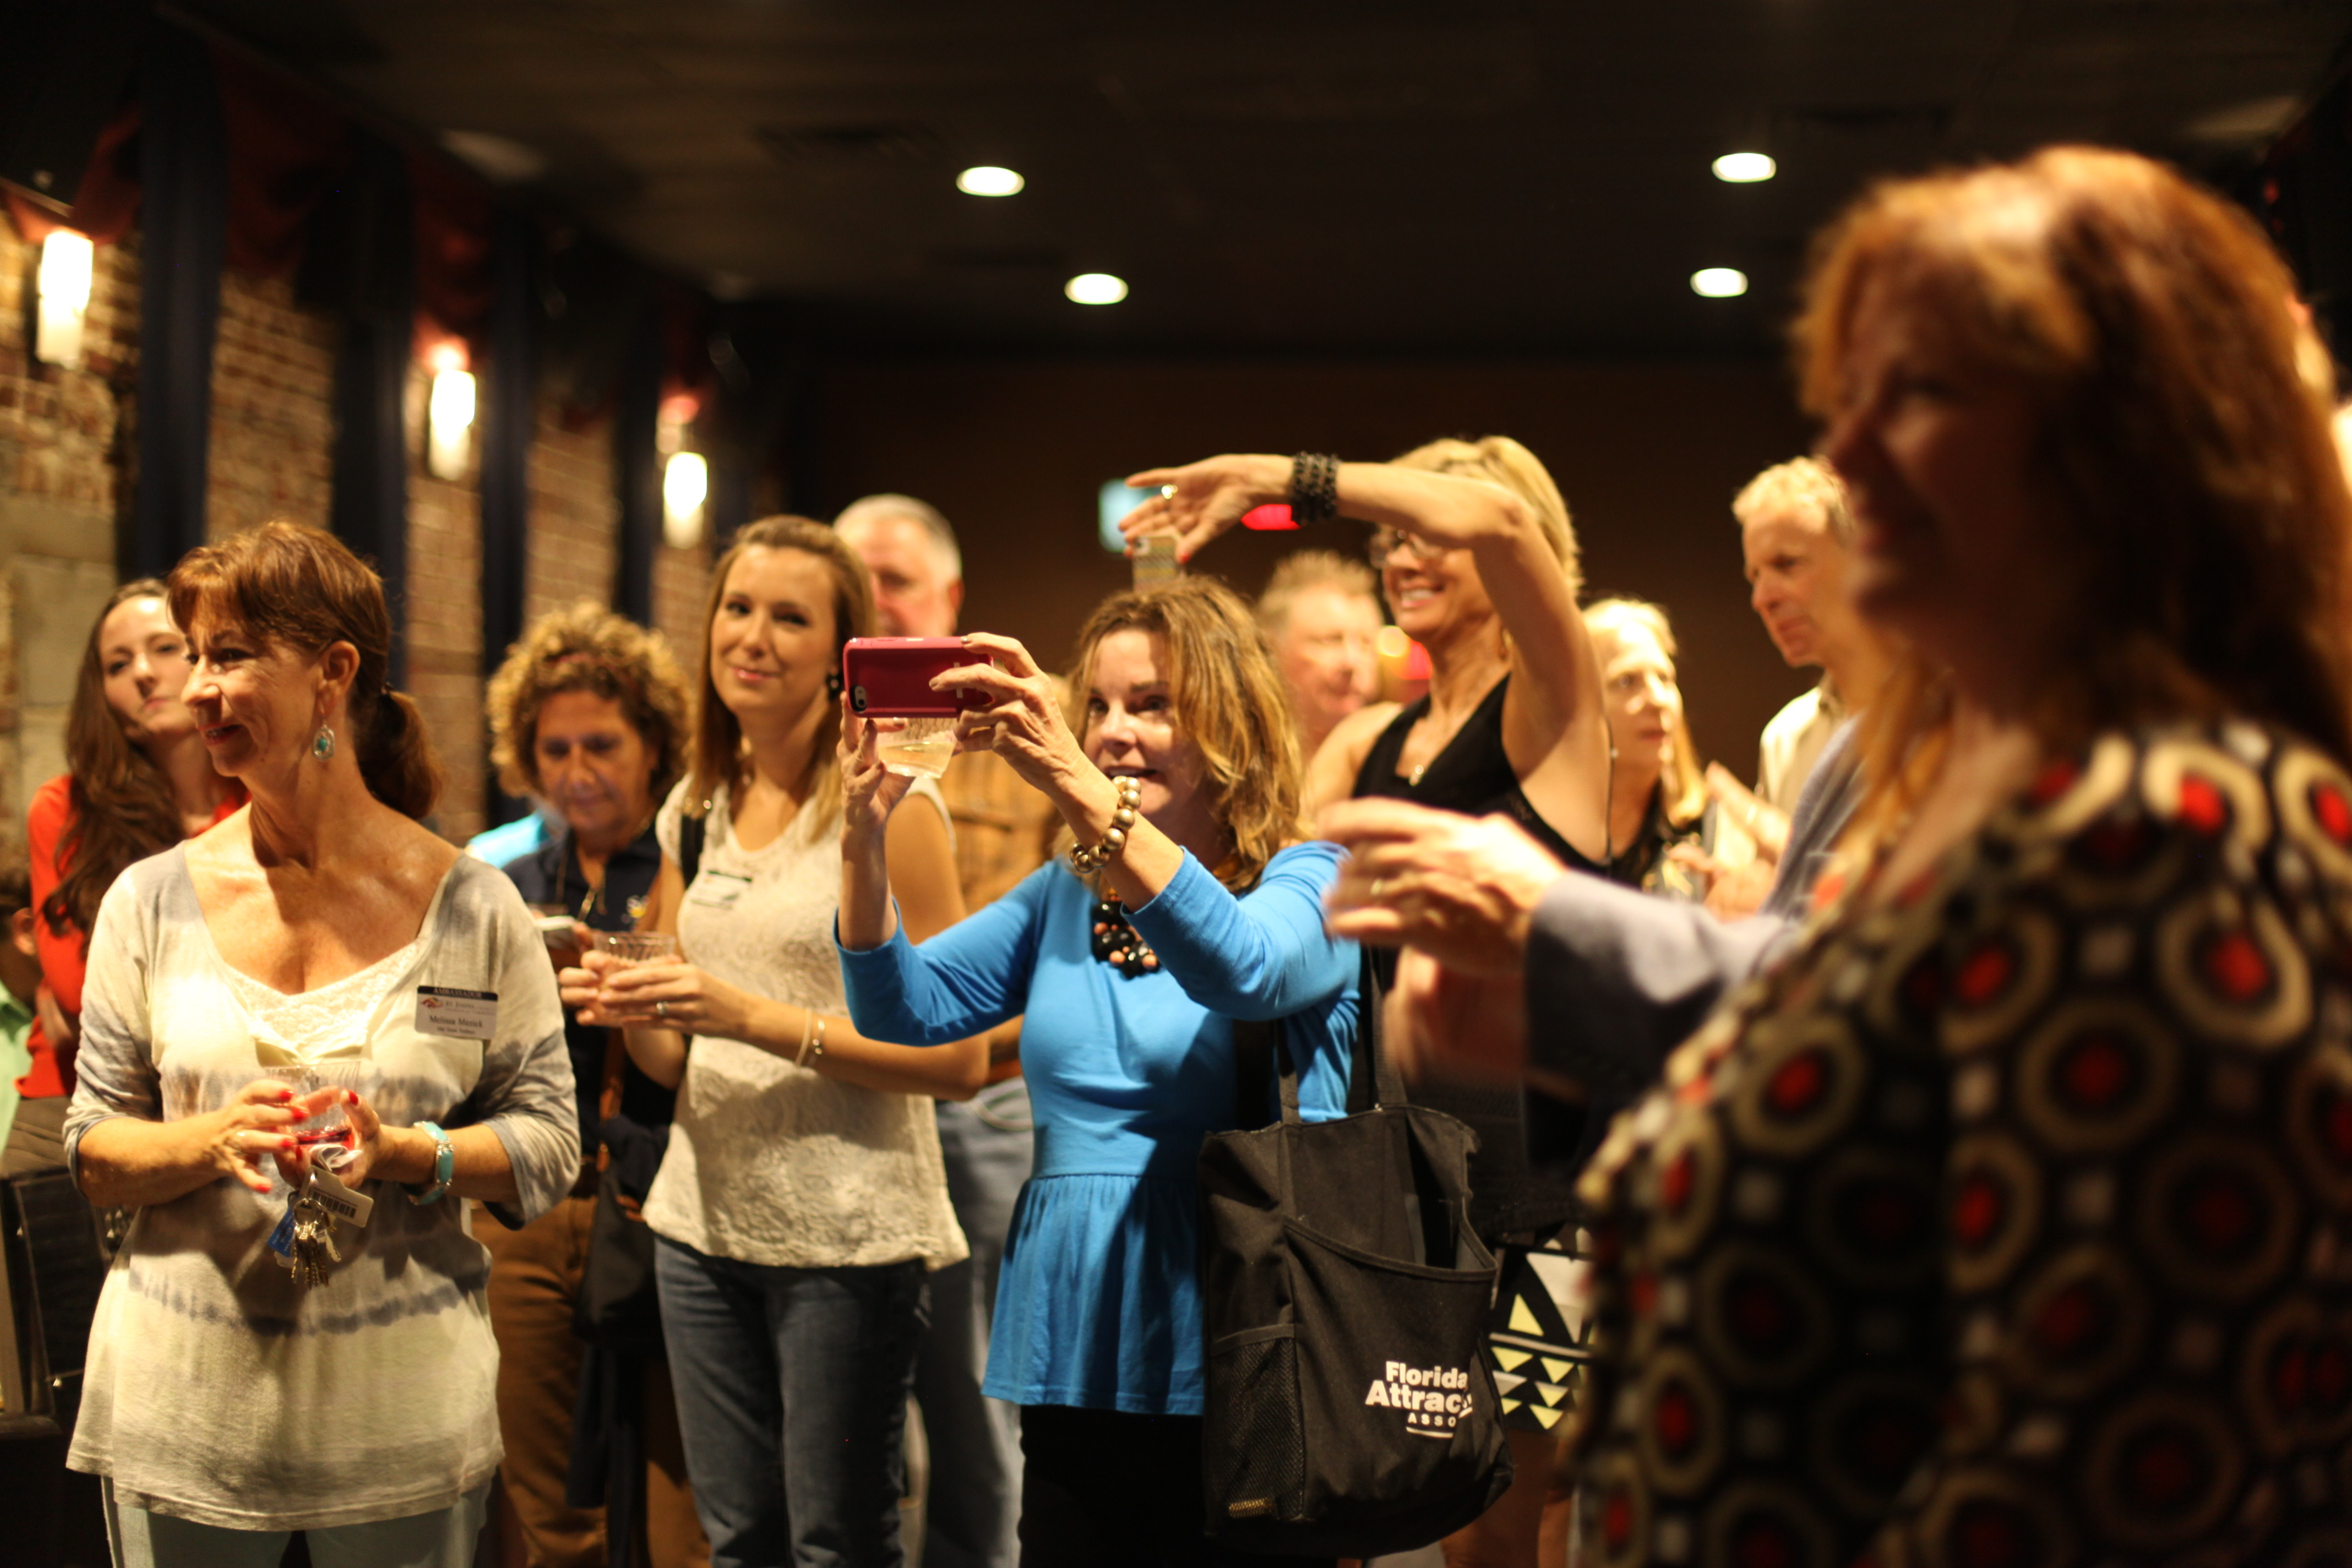 Guests to The Corazon Cinema & Cafe take photos during the ribbon cutting on Friday, Sept. 26.